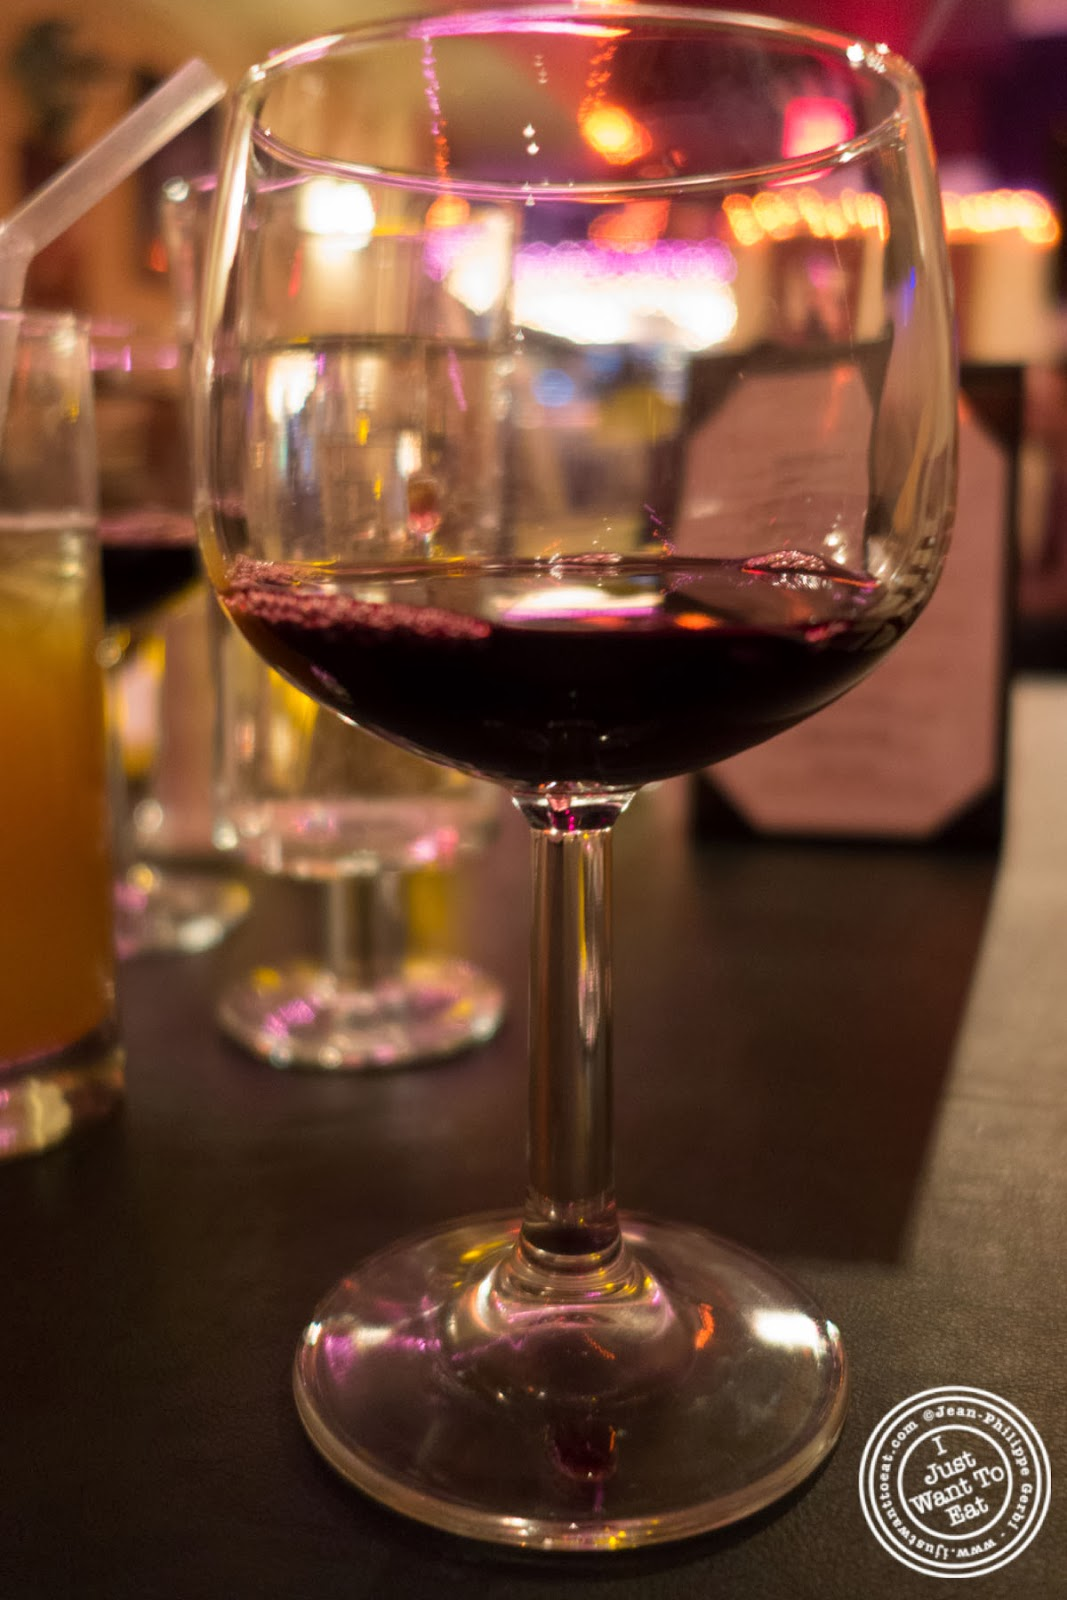 image of Alamos Malbec 2012 (Argentina) at MASQ New Orleans inspired cuisine in NYC, New York